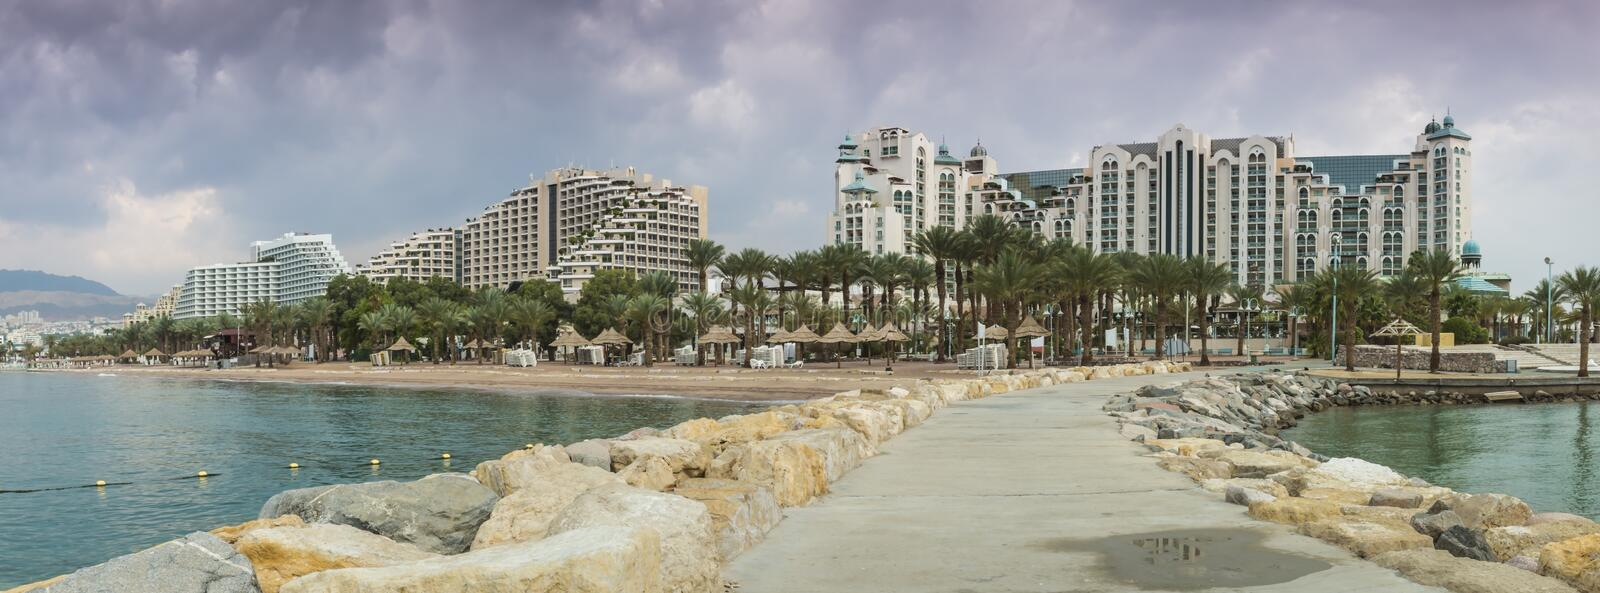 View at the Aqaba Gulf from Eilat, Israel royalty free stock photography